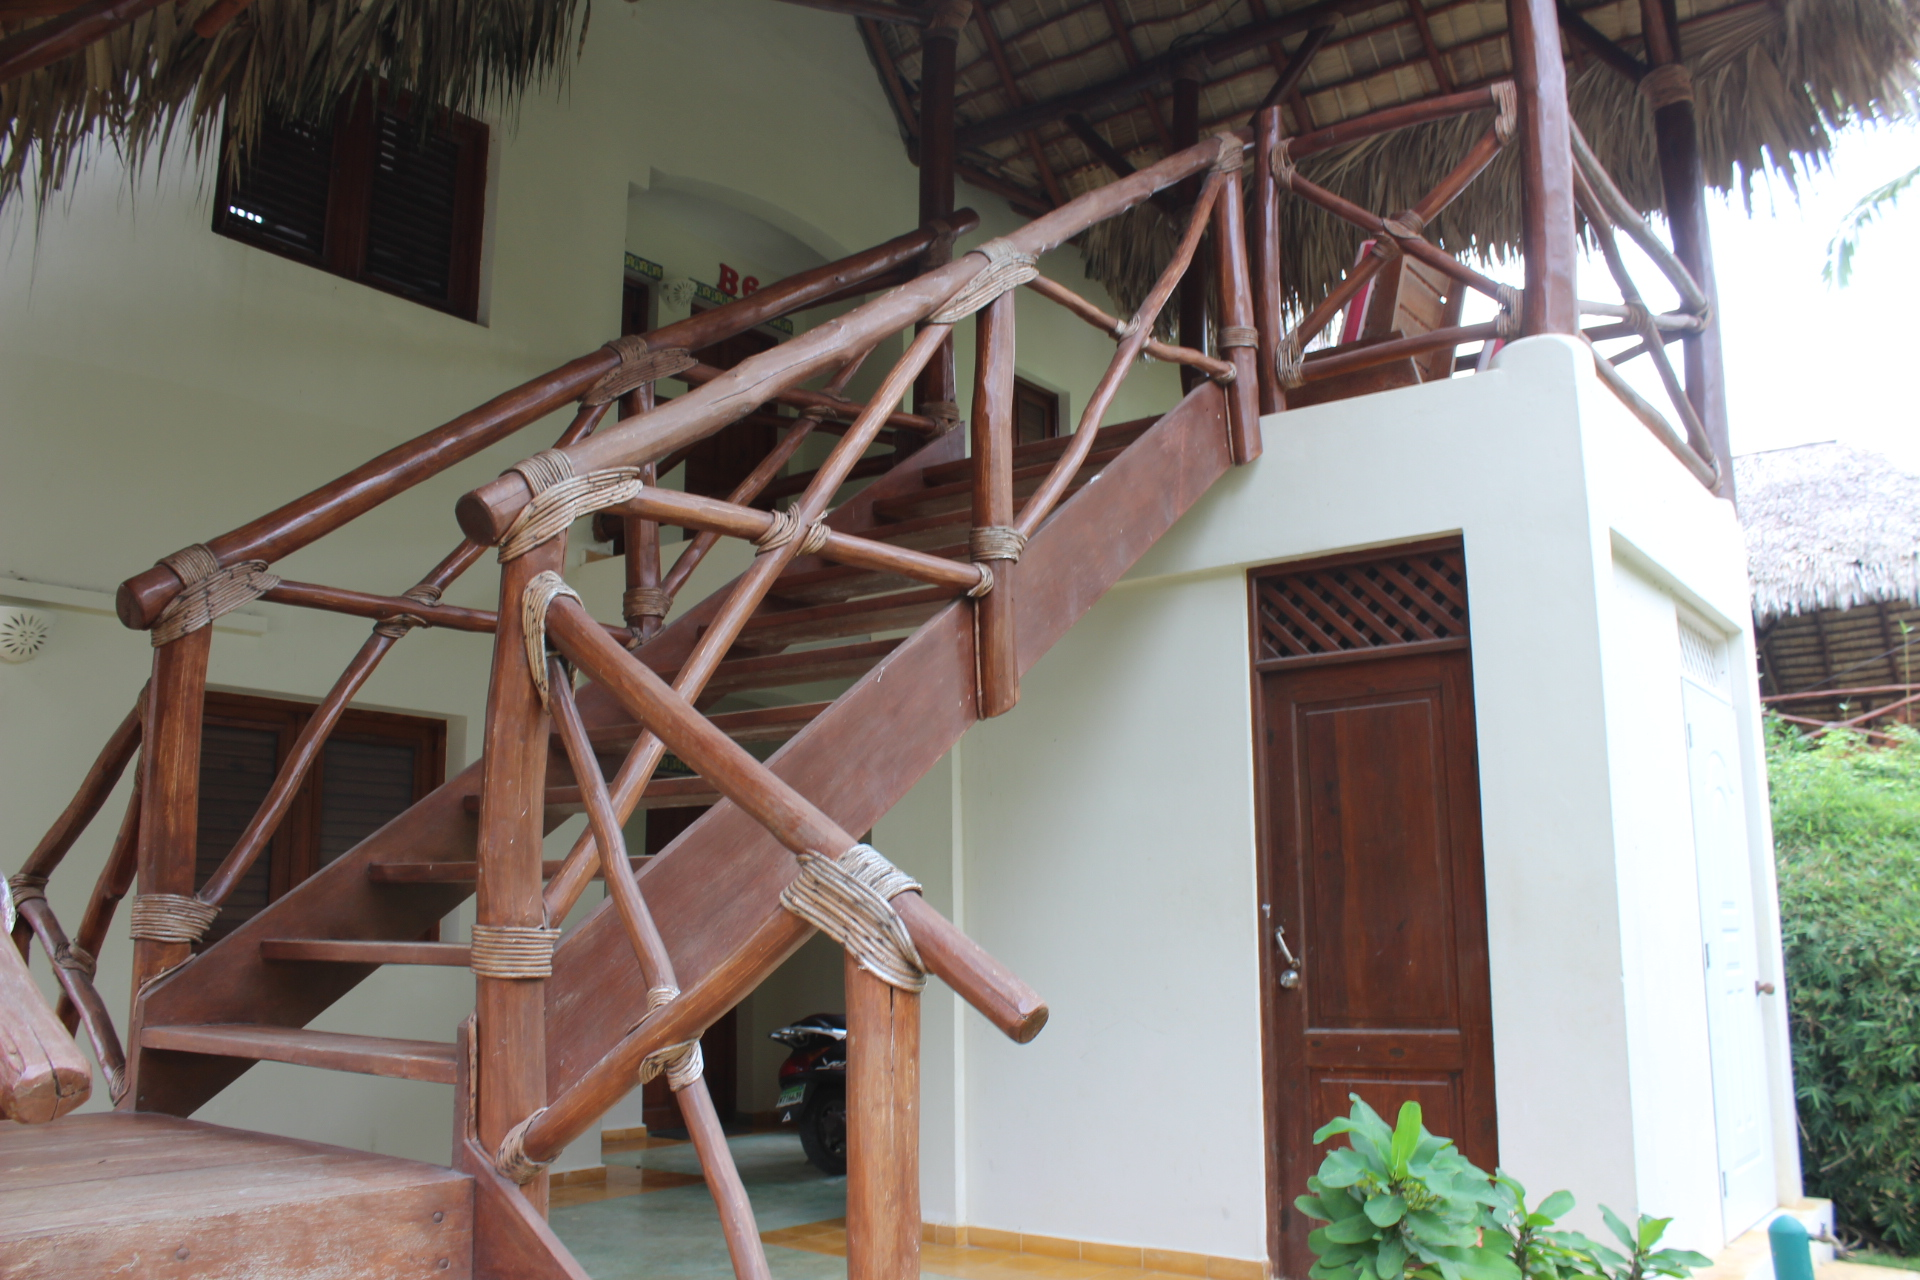 For-sale-Apartment-in-beachfront-community-with-mezzanine-Las-Terrenas_4781.JPG